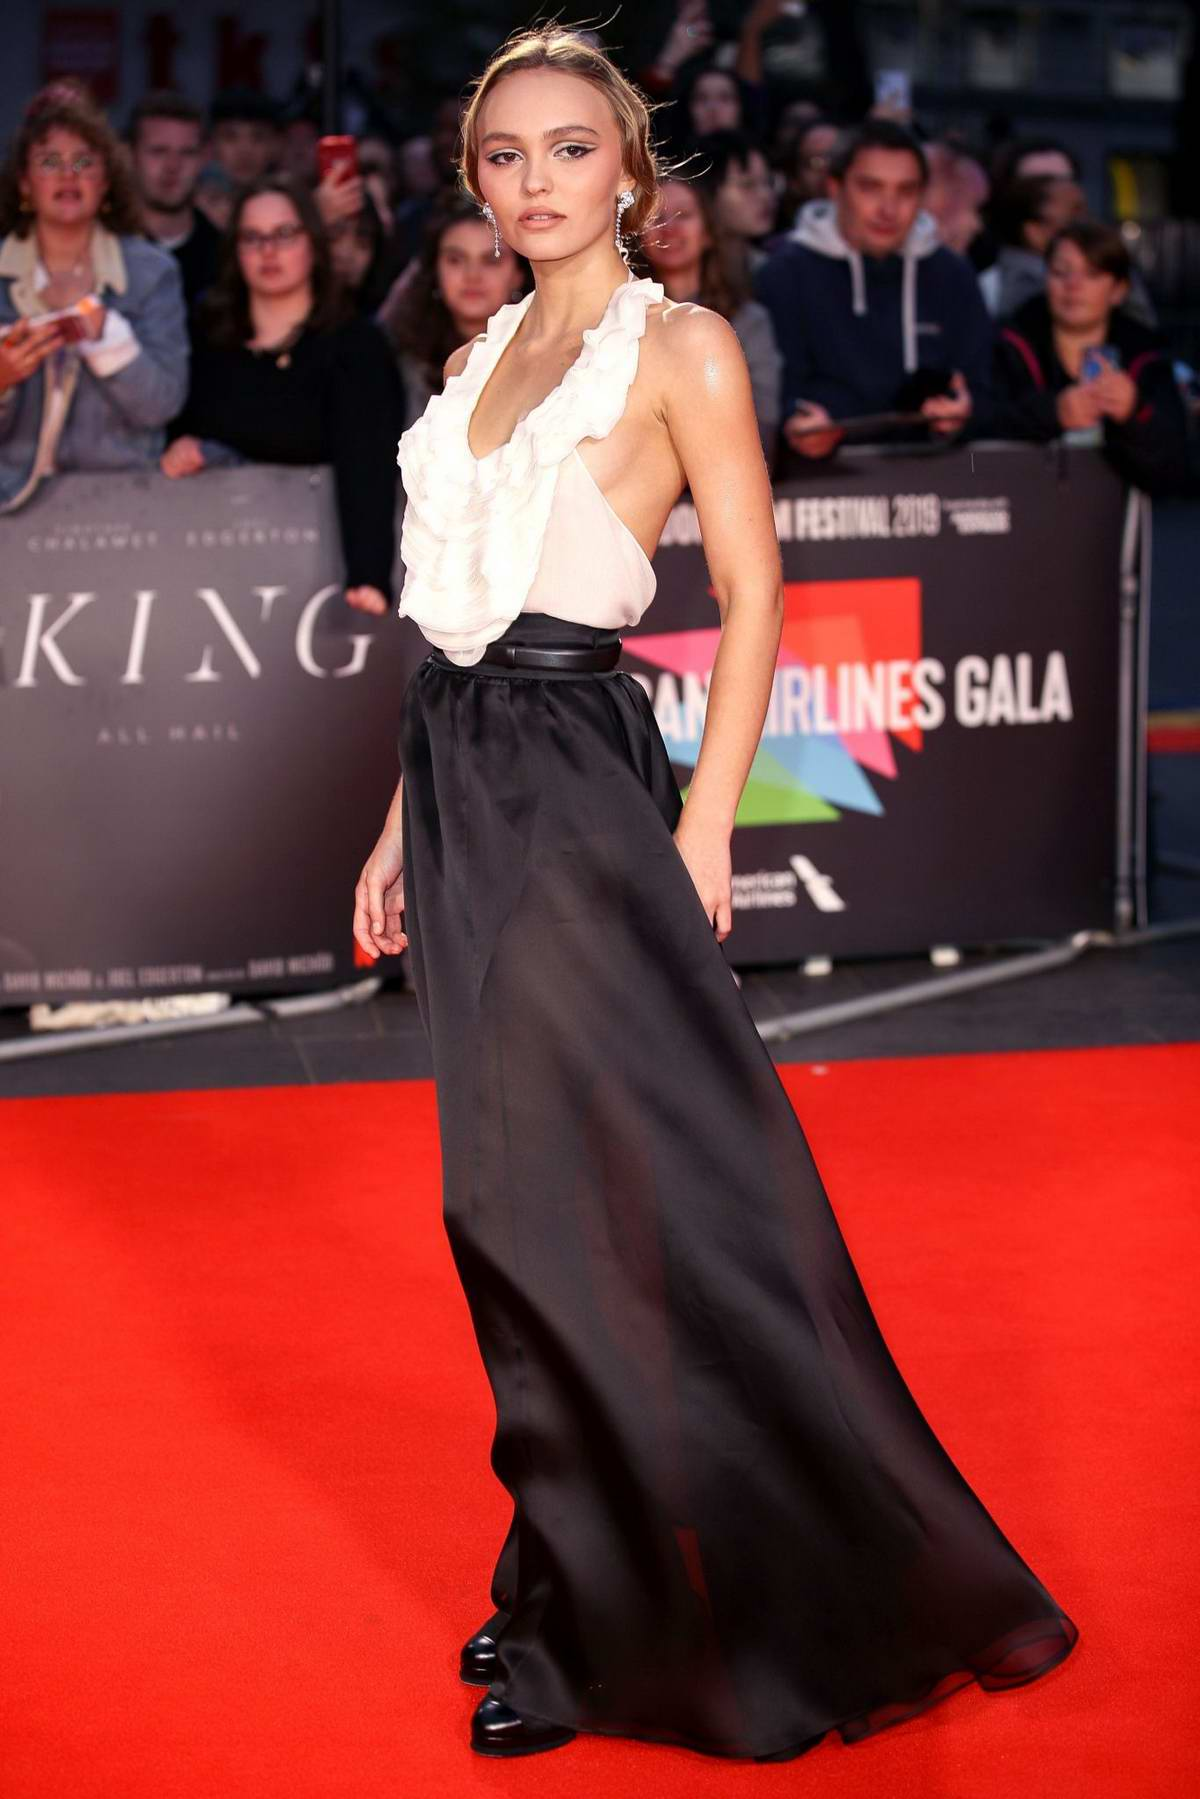 Lily-Rose Depp attends 'The King' UK Premiere during the 63rd BFI London Film Festival in London, UK